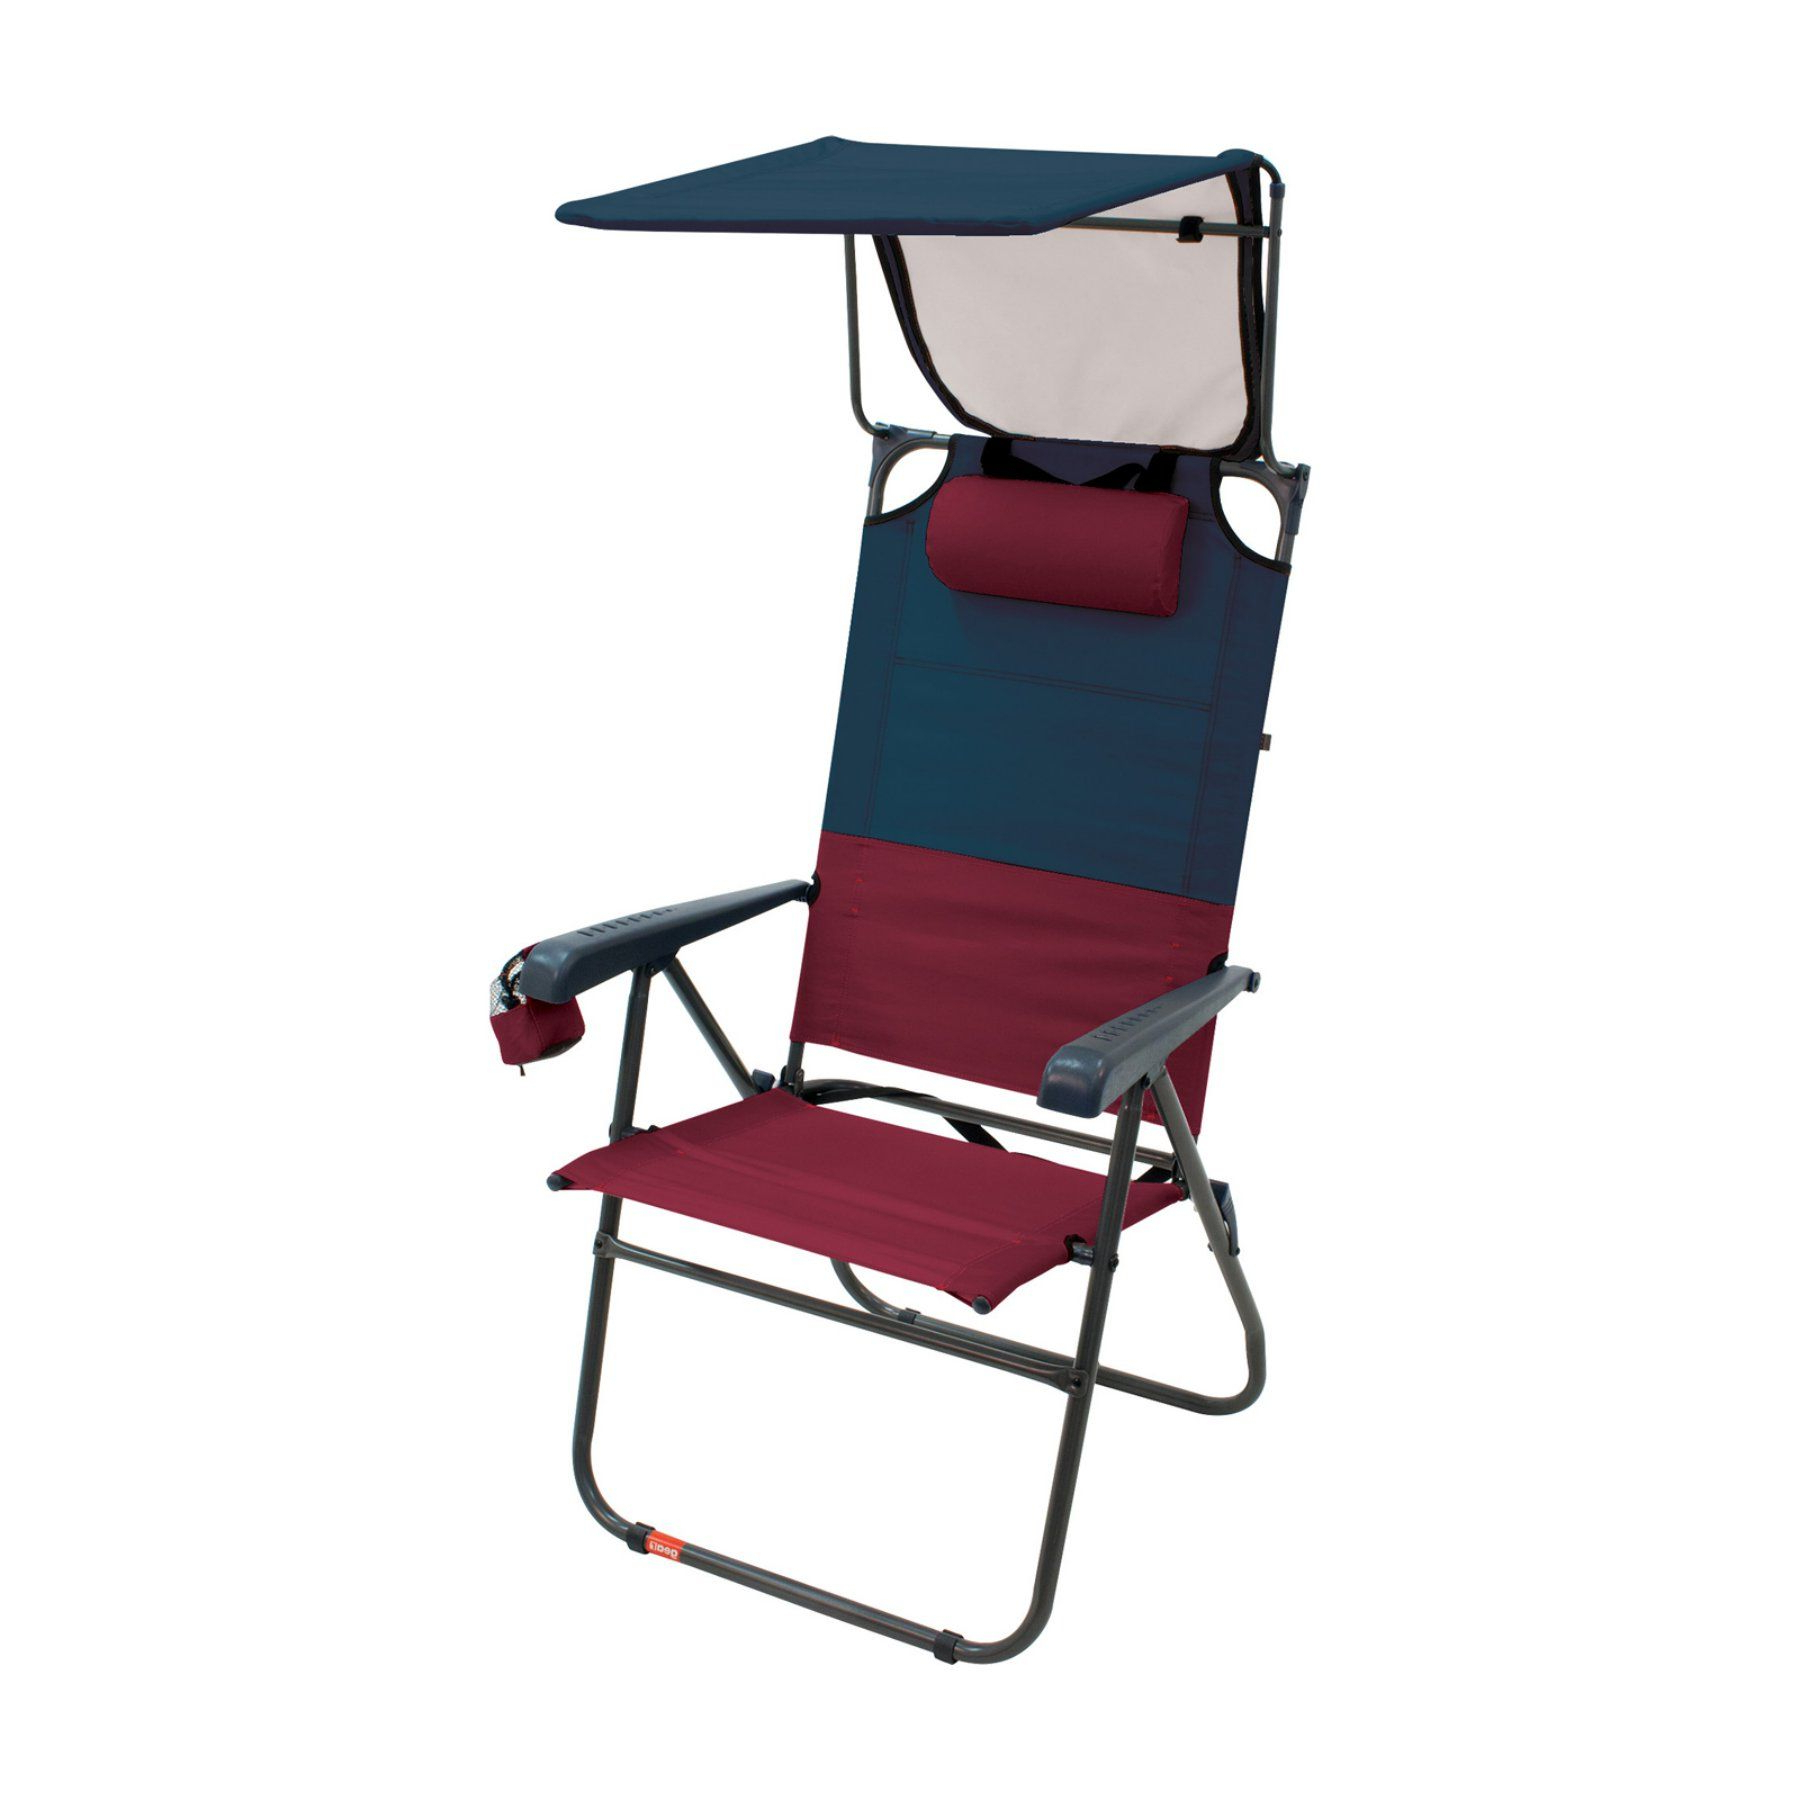 Outdoor Rio Gear Hi Boy Aluminum Canopy Beach Chair Blue Sky With 2020 Deluxe Padded Chairs With Canopy And Tray (View 19 of 25)